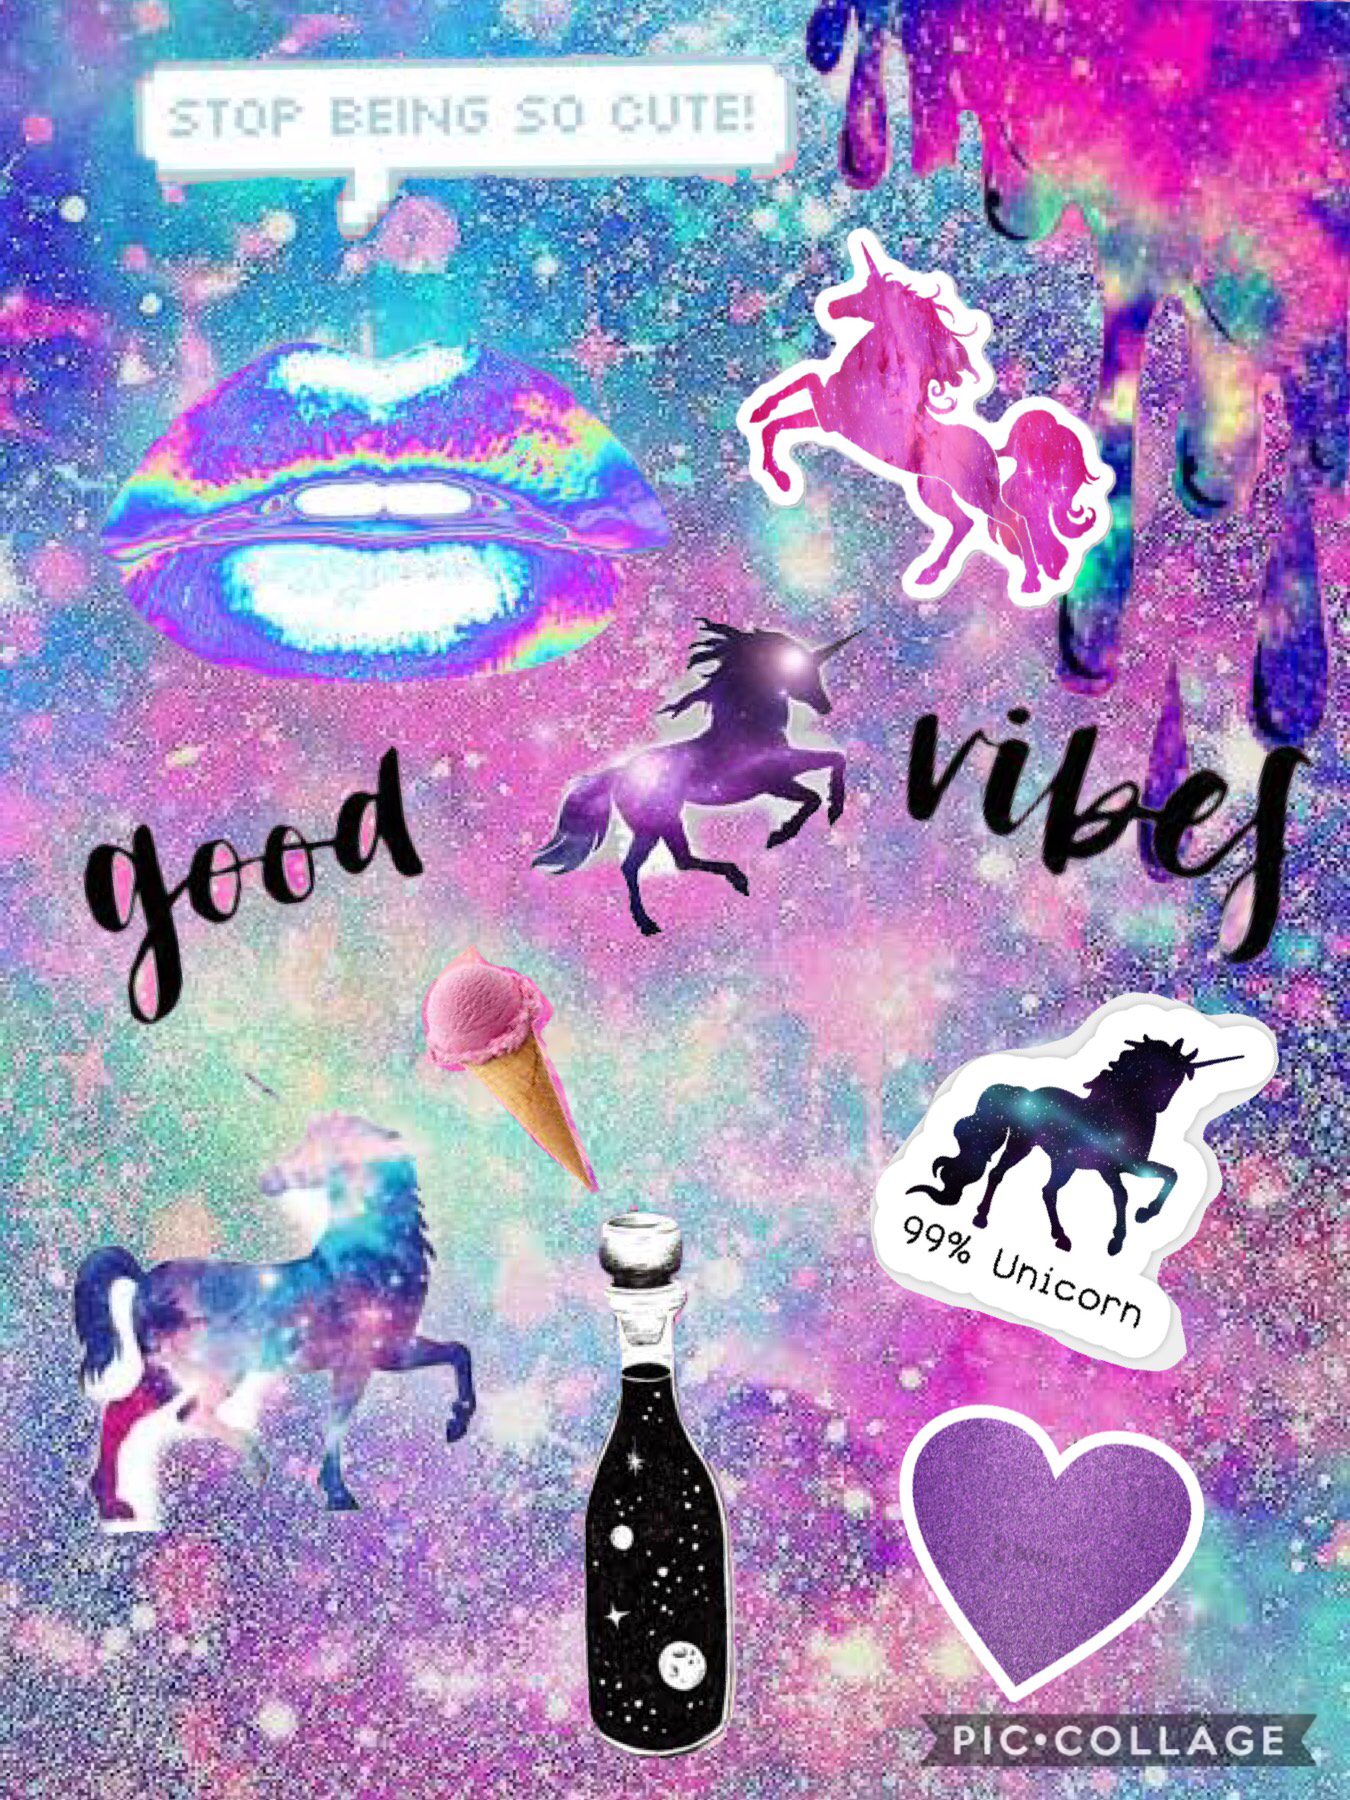 So I love unicorn who ever comments down below they love unicorns they get a shoutout 💜💜